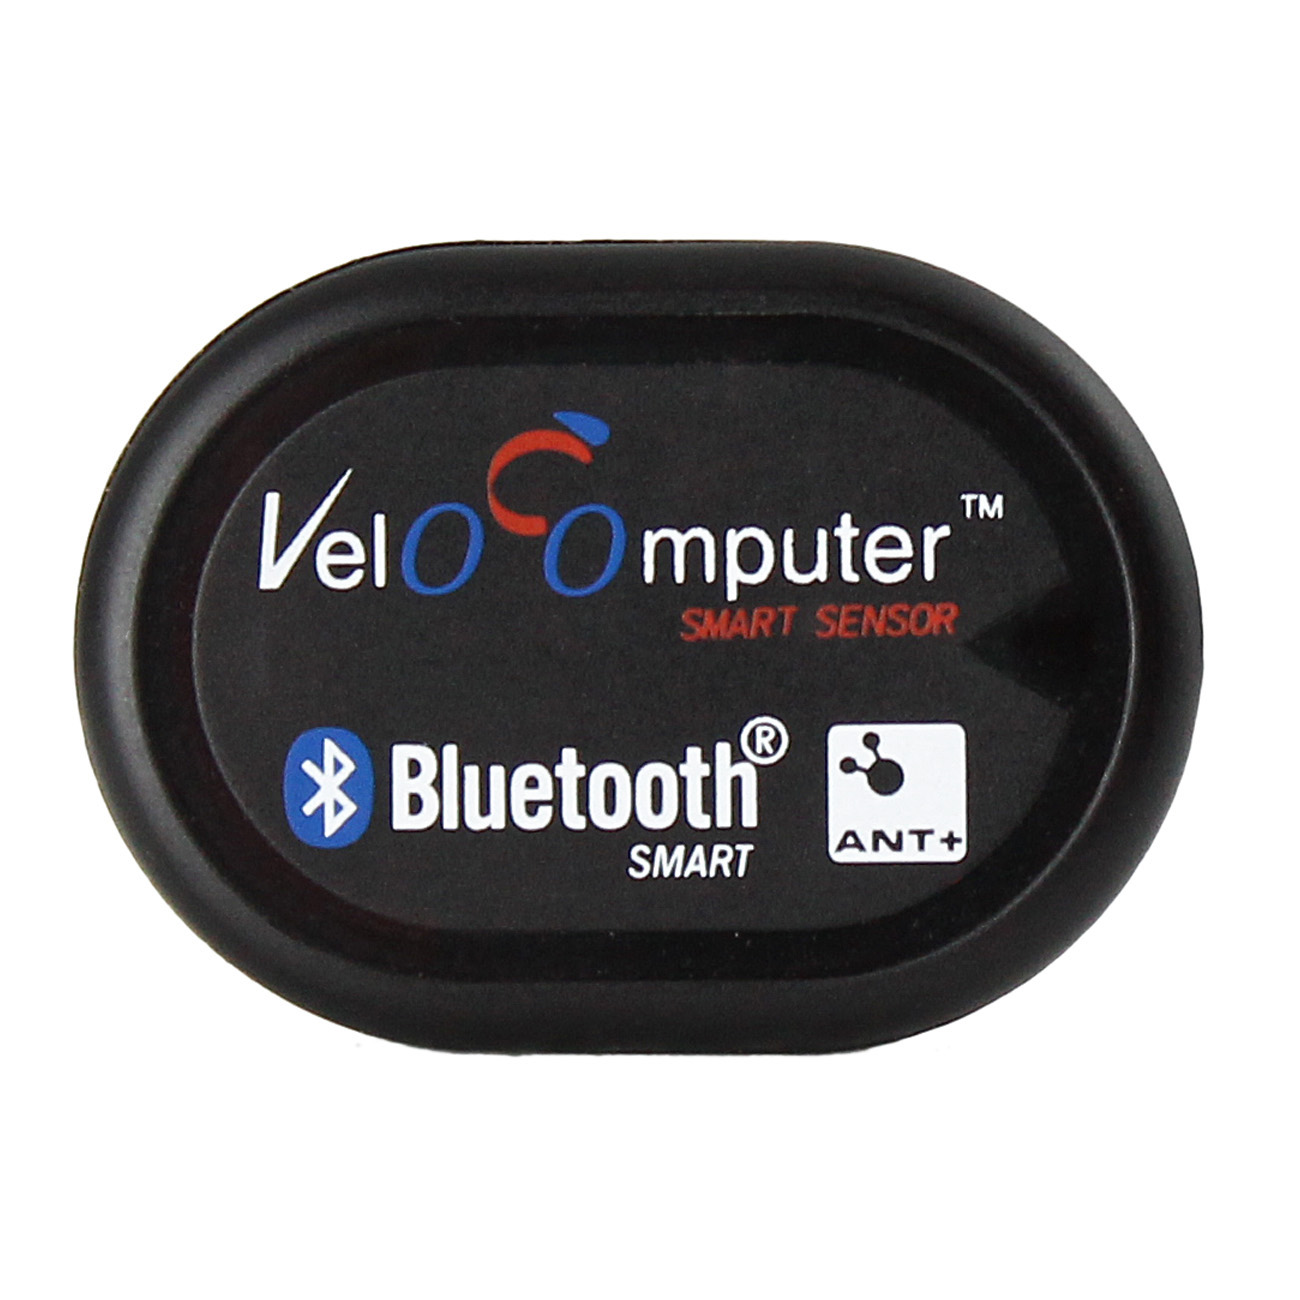 NC-17 Connect VeloComputer VC#5.1<br/>Trittfrequenz / Cadence, ANT+ und Bluetooth 4.0<br/>&nbsp;&nbsp;